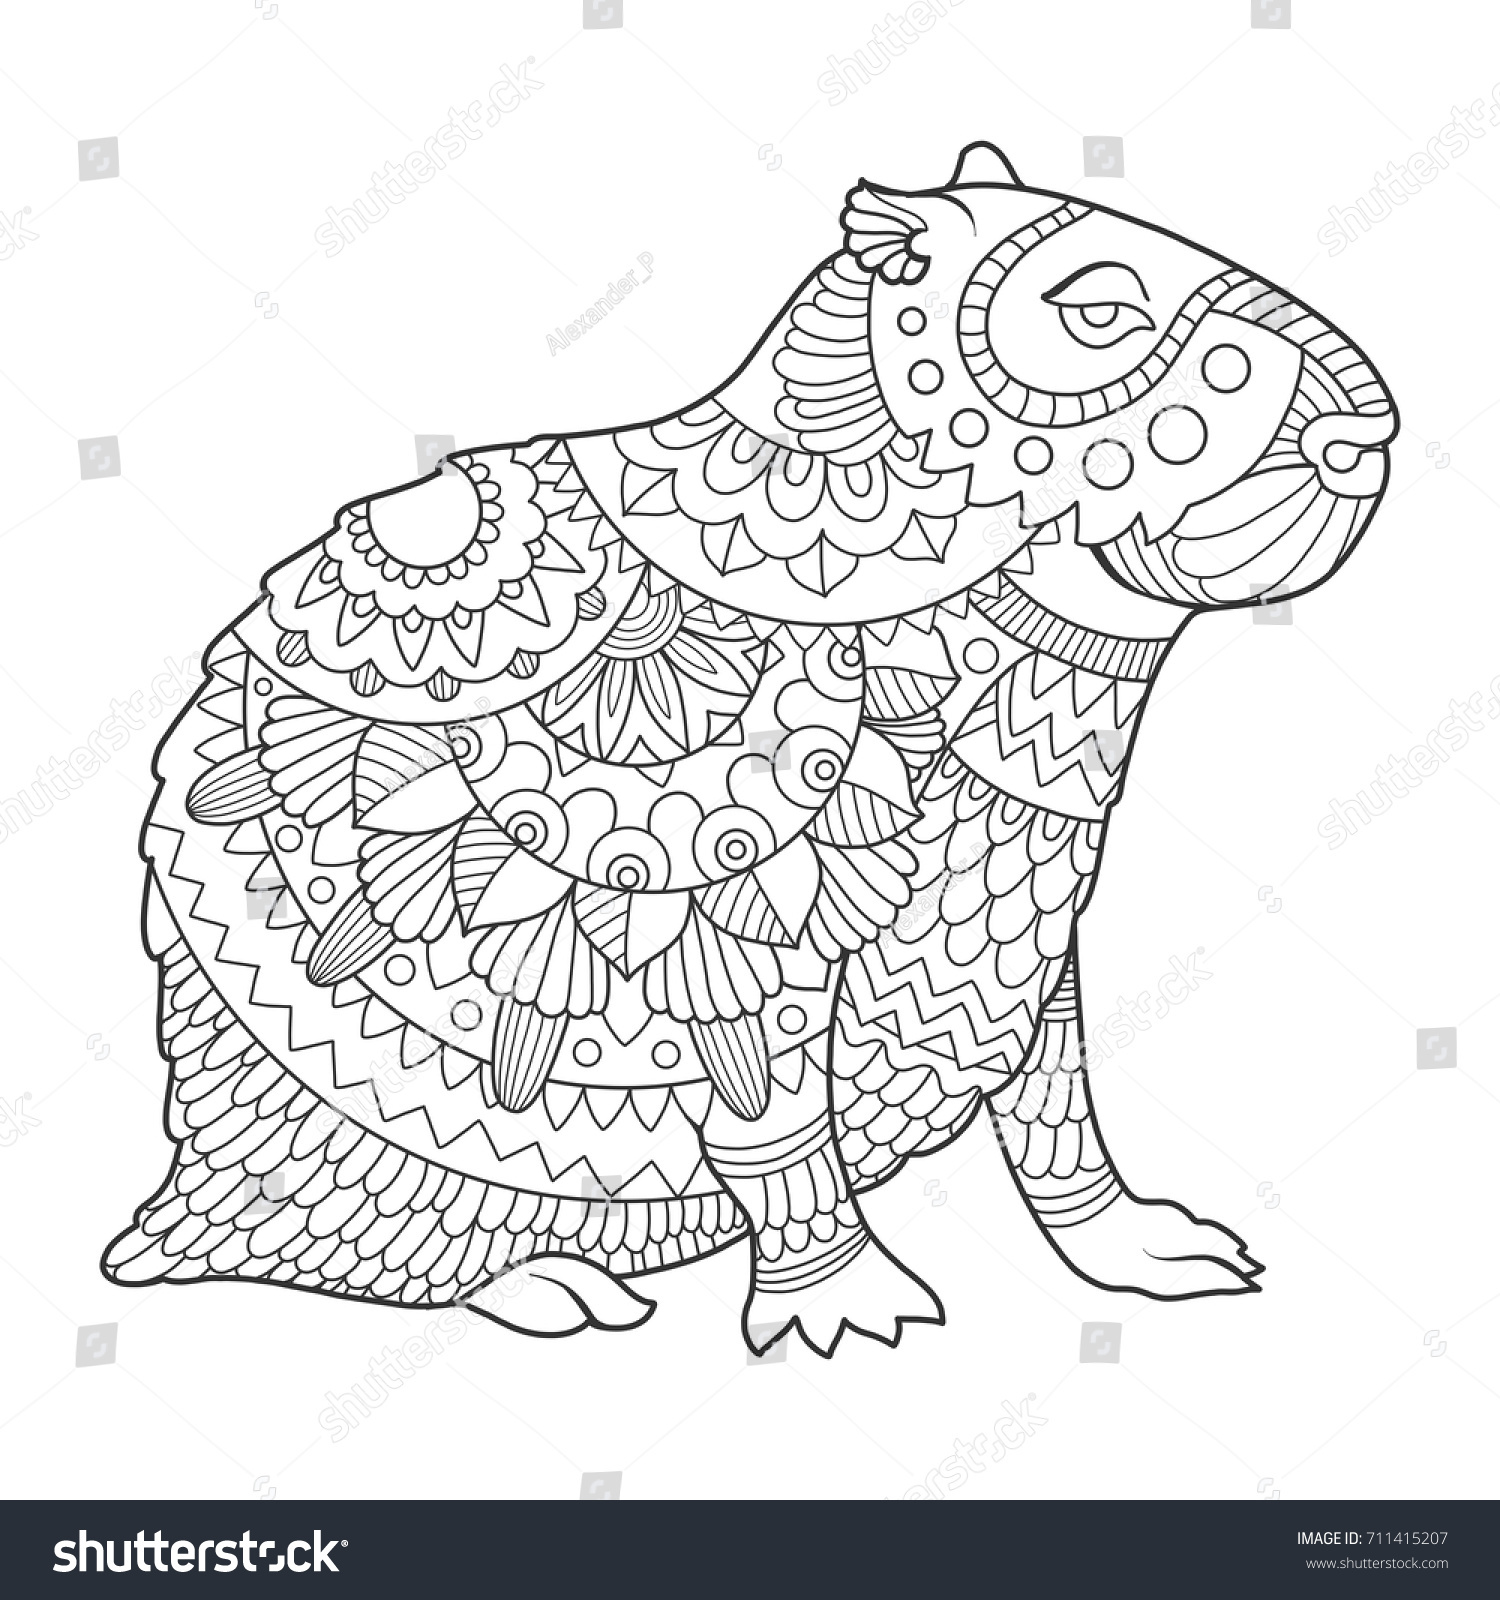 Capybara Rodent Animal Coloring Book Vector Vector de stock (libre ...